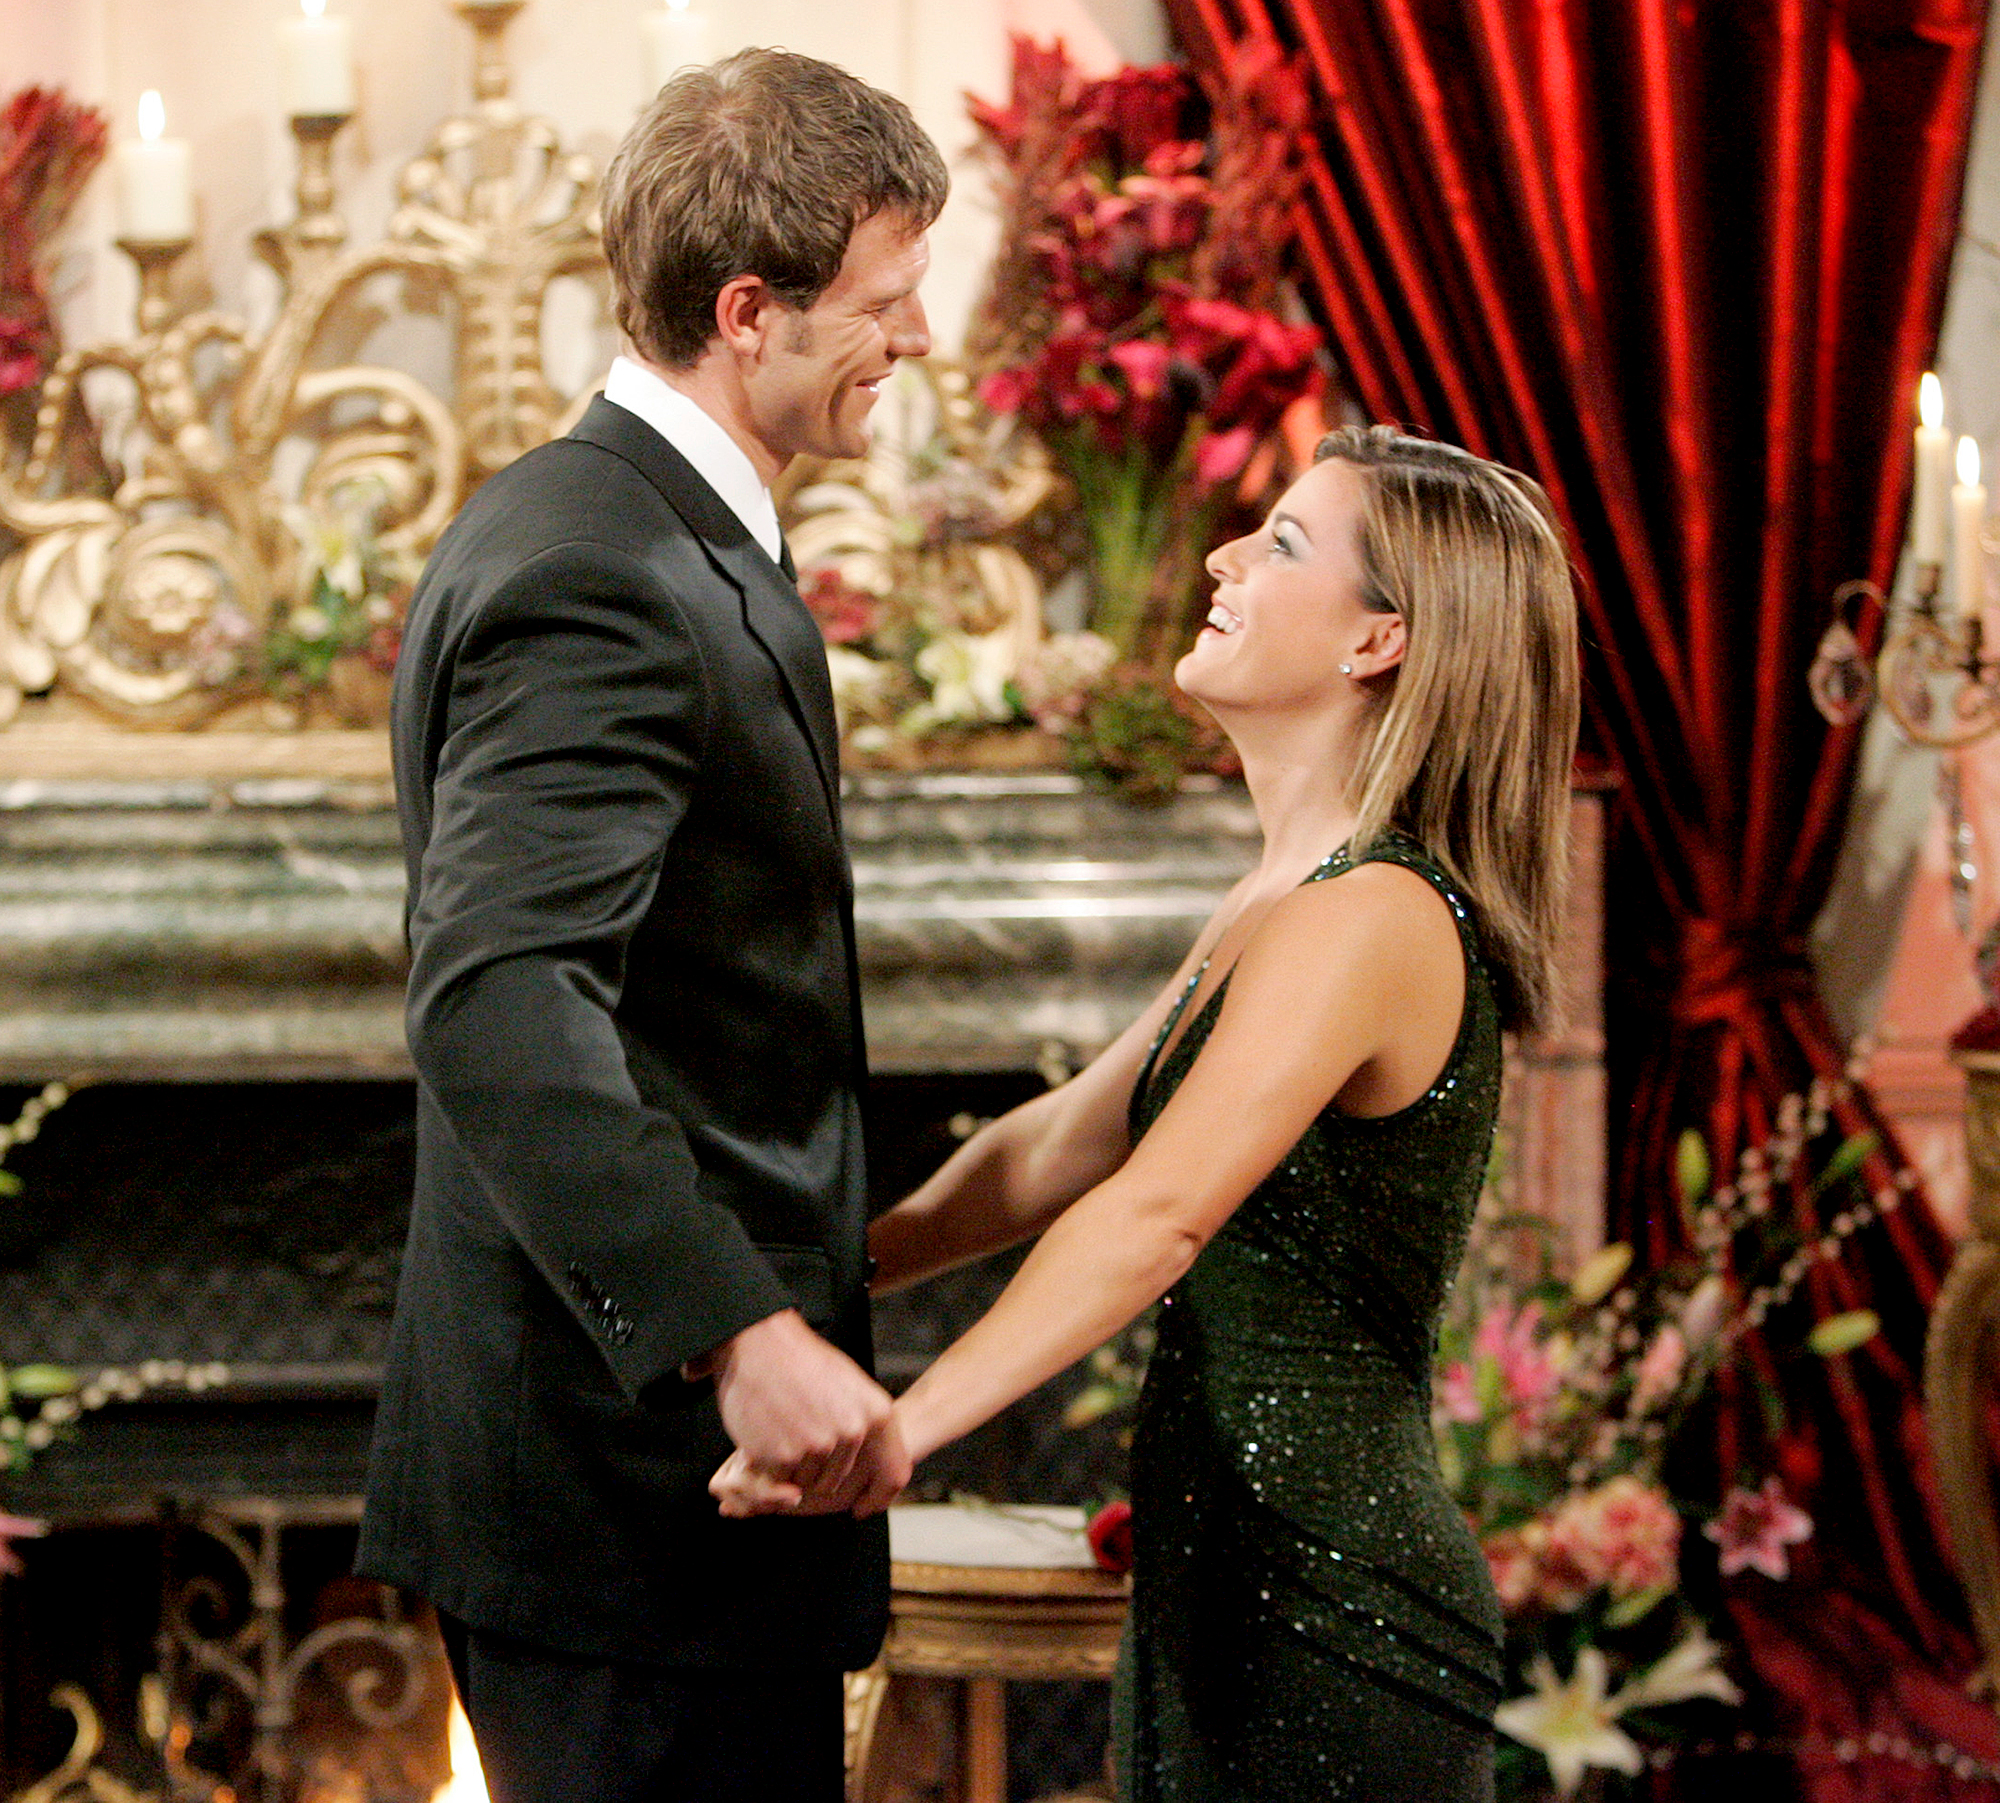 Travis-Stork-and-Sarah-Stone - The Doctors host did not propose to Sarah Stone during season 8. While they dated after the February 2006 finale, they called it quits shortly after the season aired.